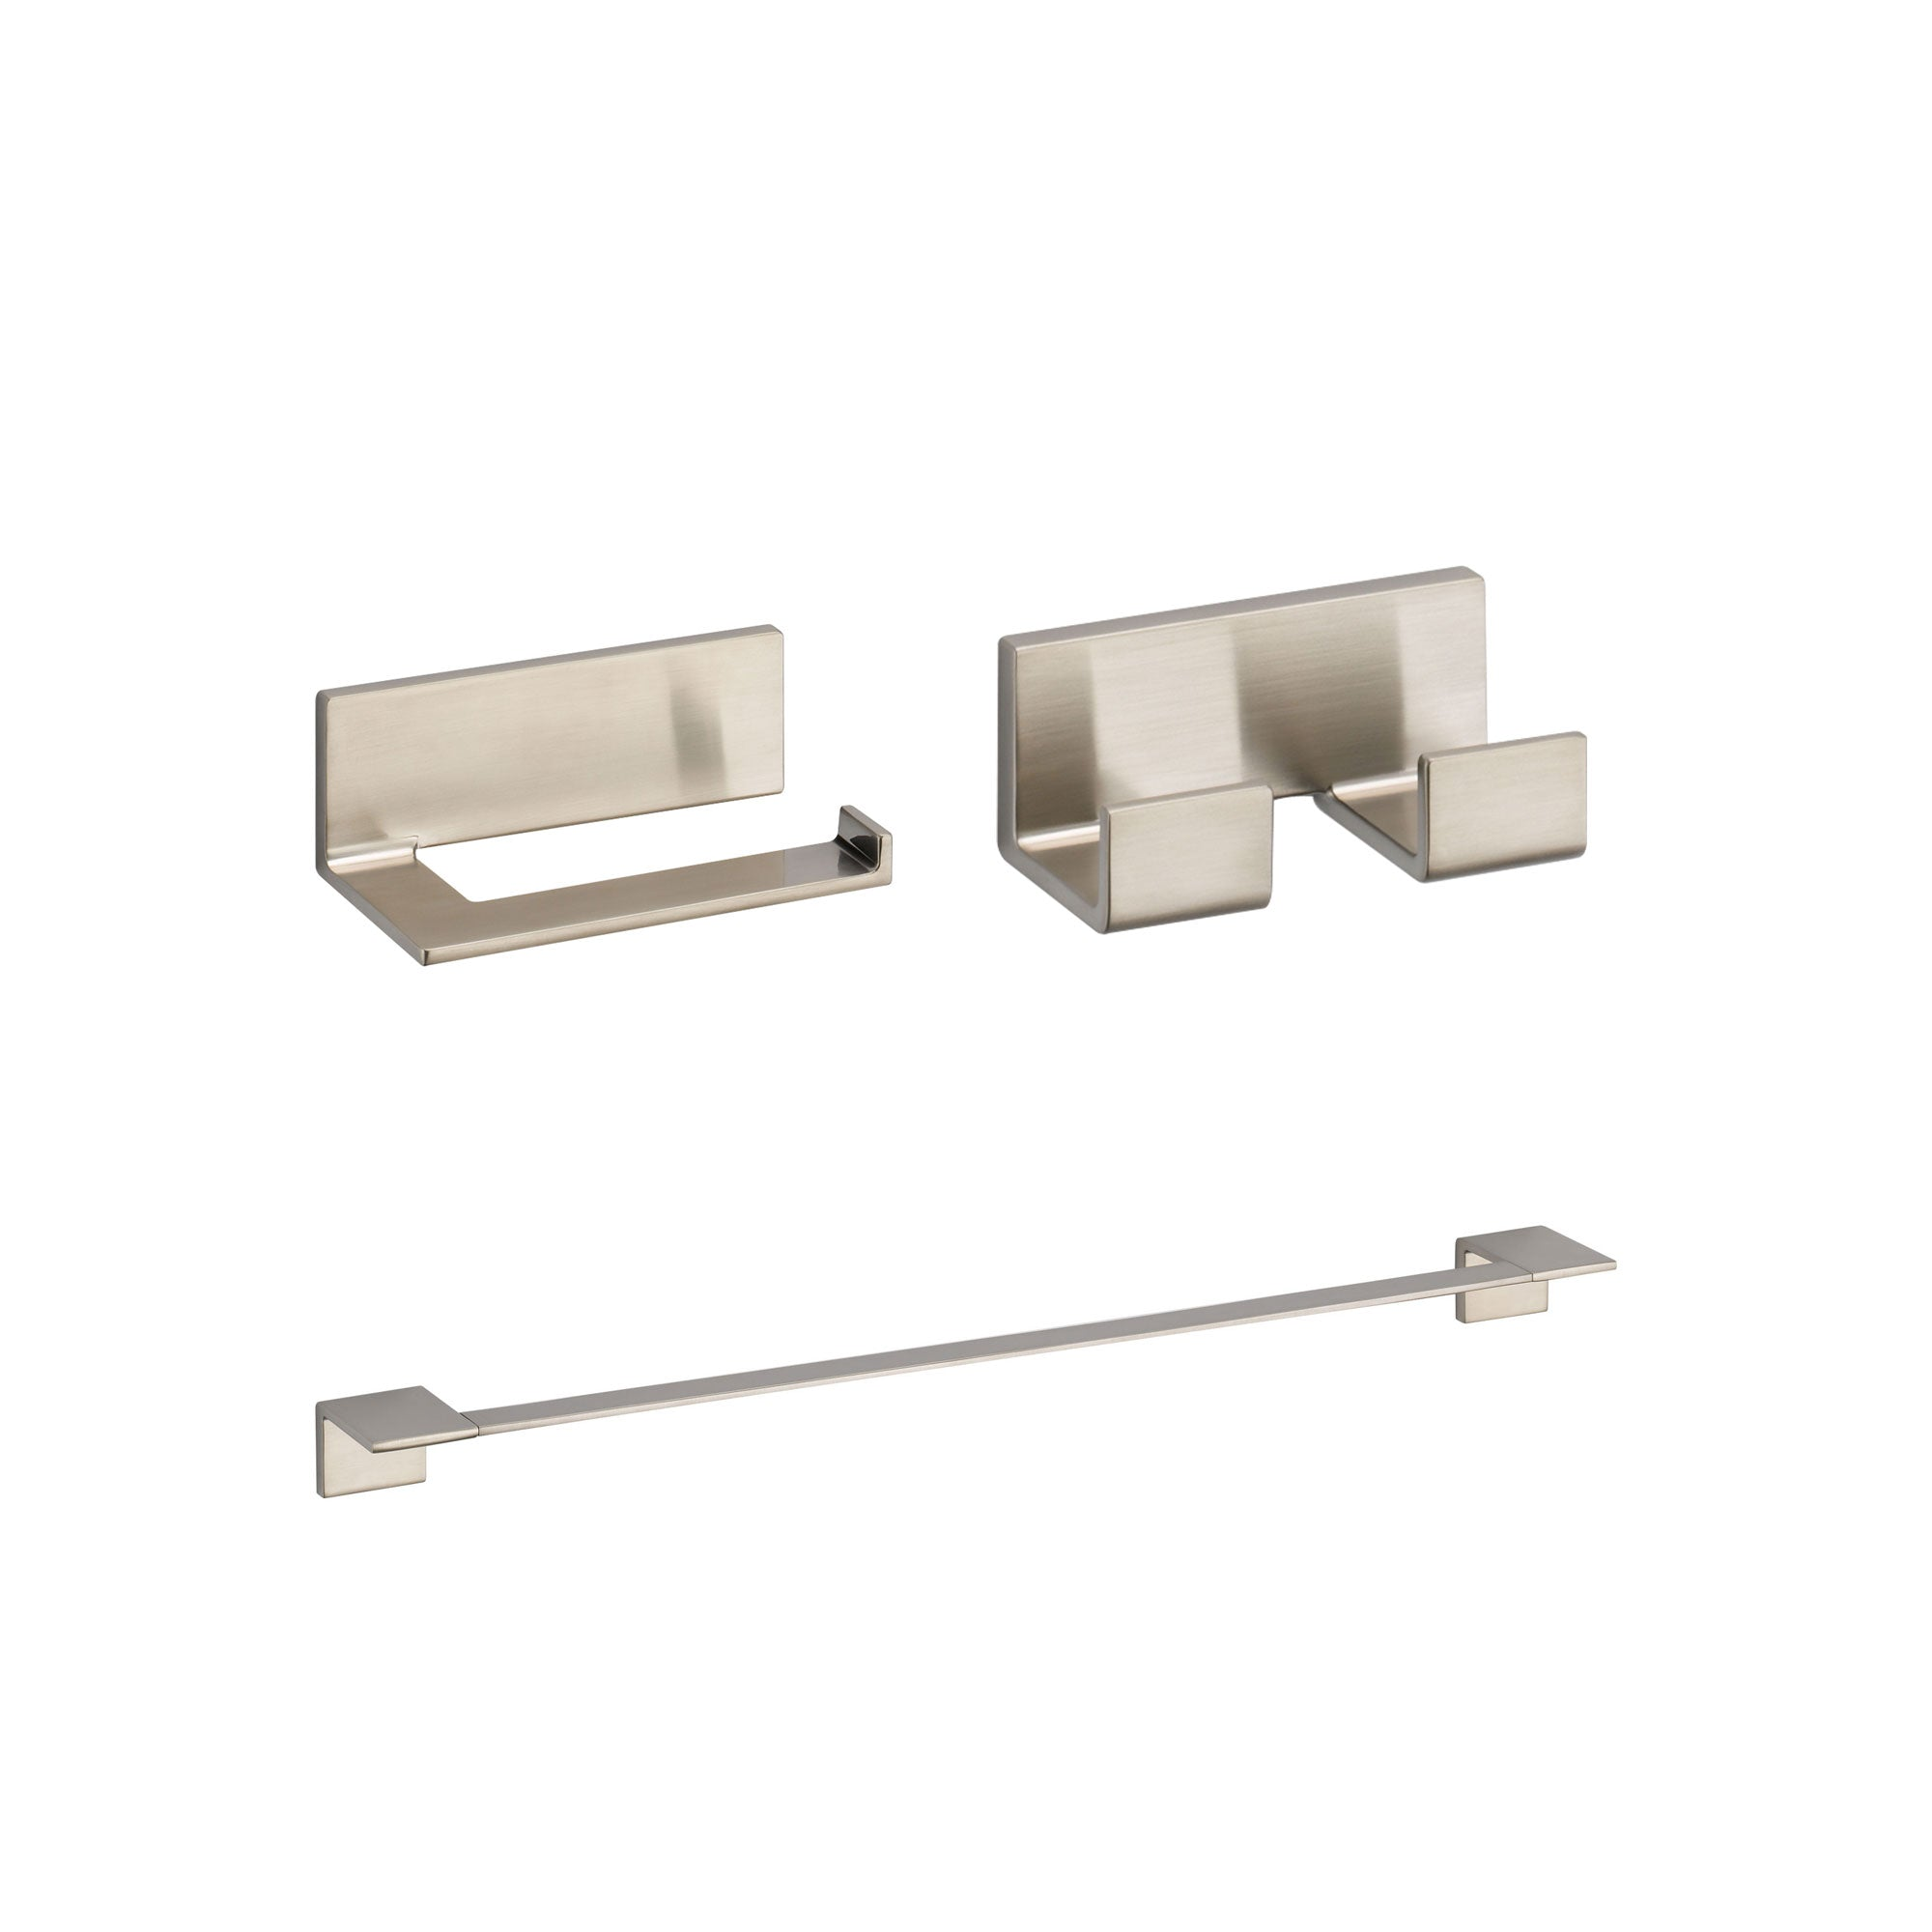 "Delta Vero Stainless Steel Finish BASICS Bathroom Accessory Set Includes: 24"" Towel Bar, Toilet Paper Holder, and Double Robe Hook D10057AP"